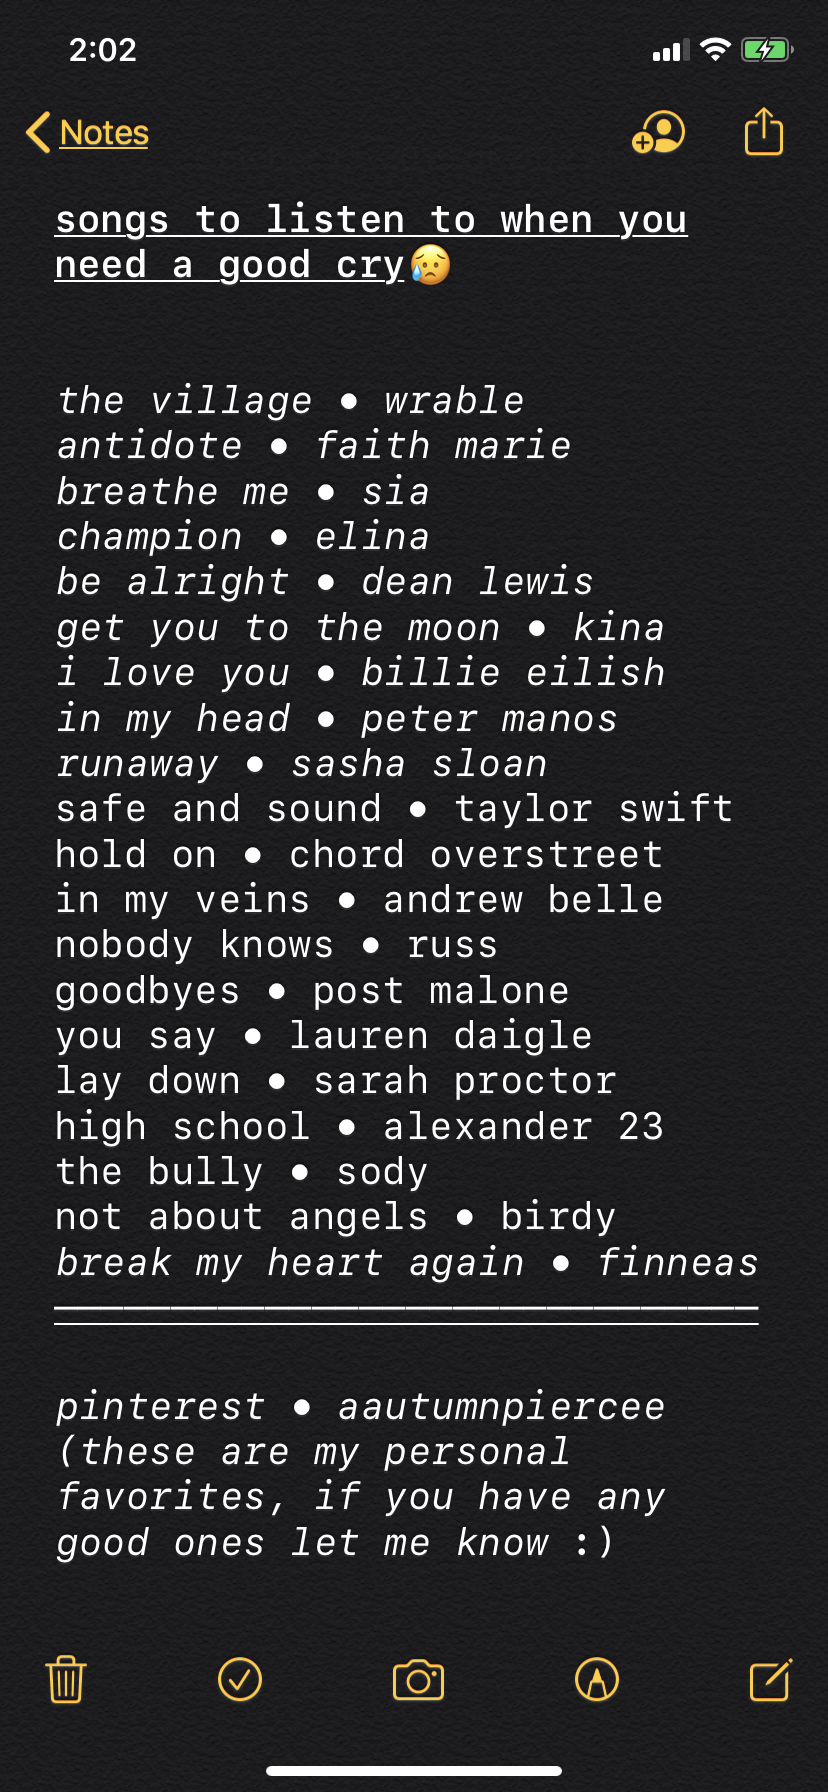 songs to listen to when you need a good cry in 2019 Mood